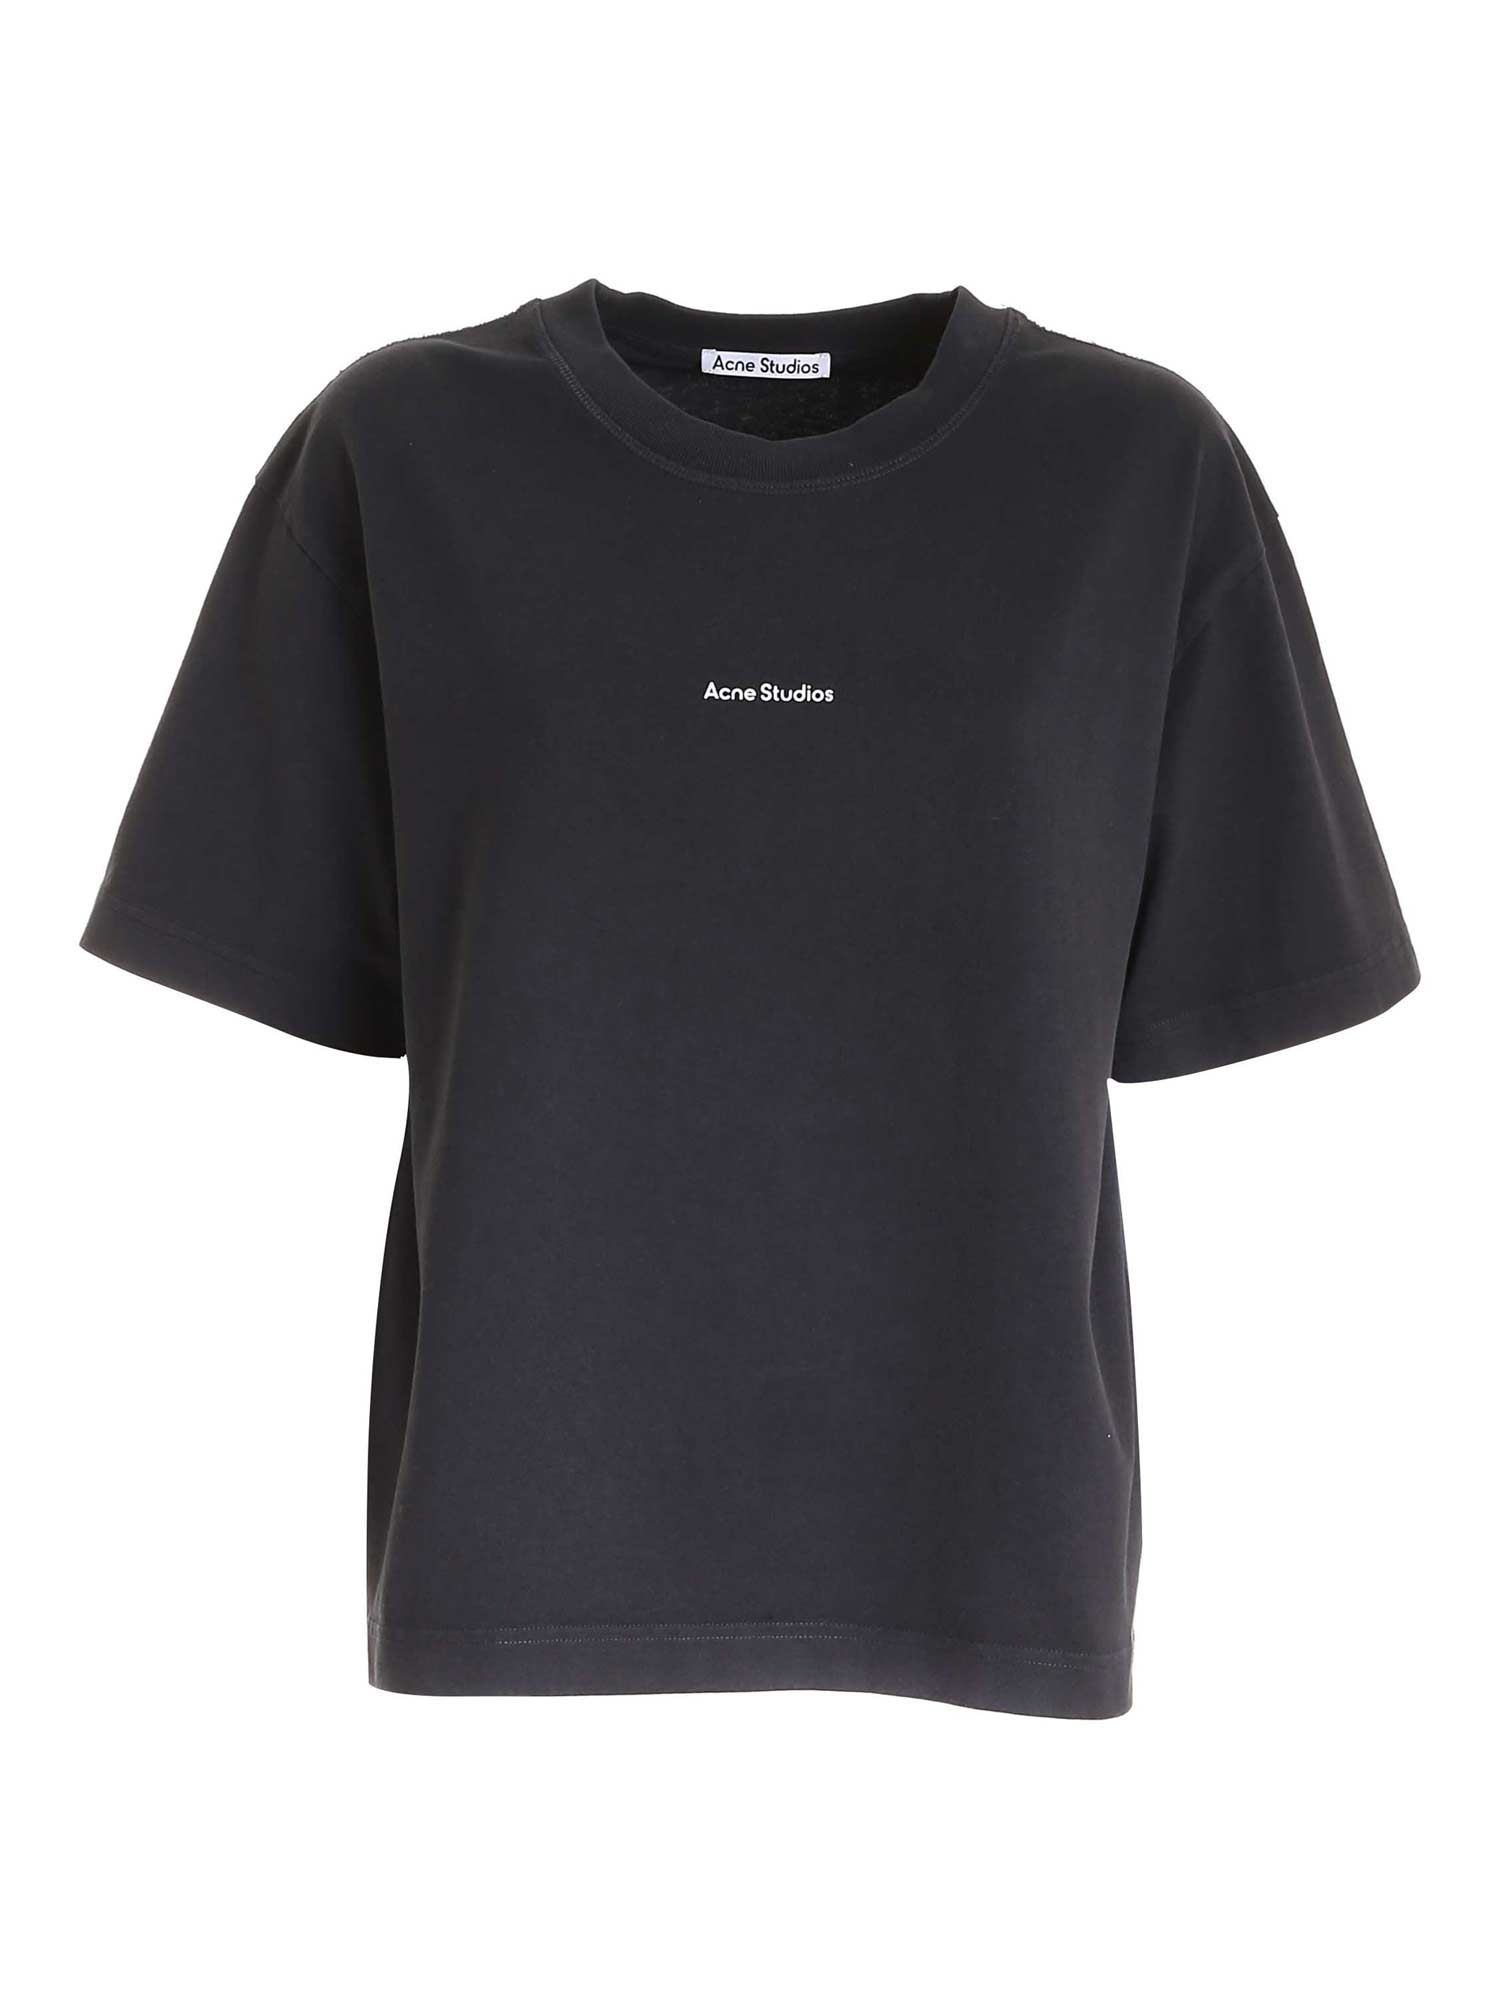 Acne Studios LOGO PRINT T-SHIRT IN BLACK